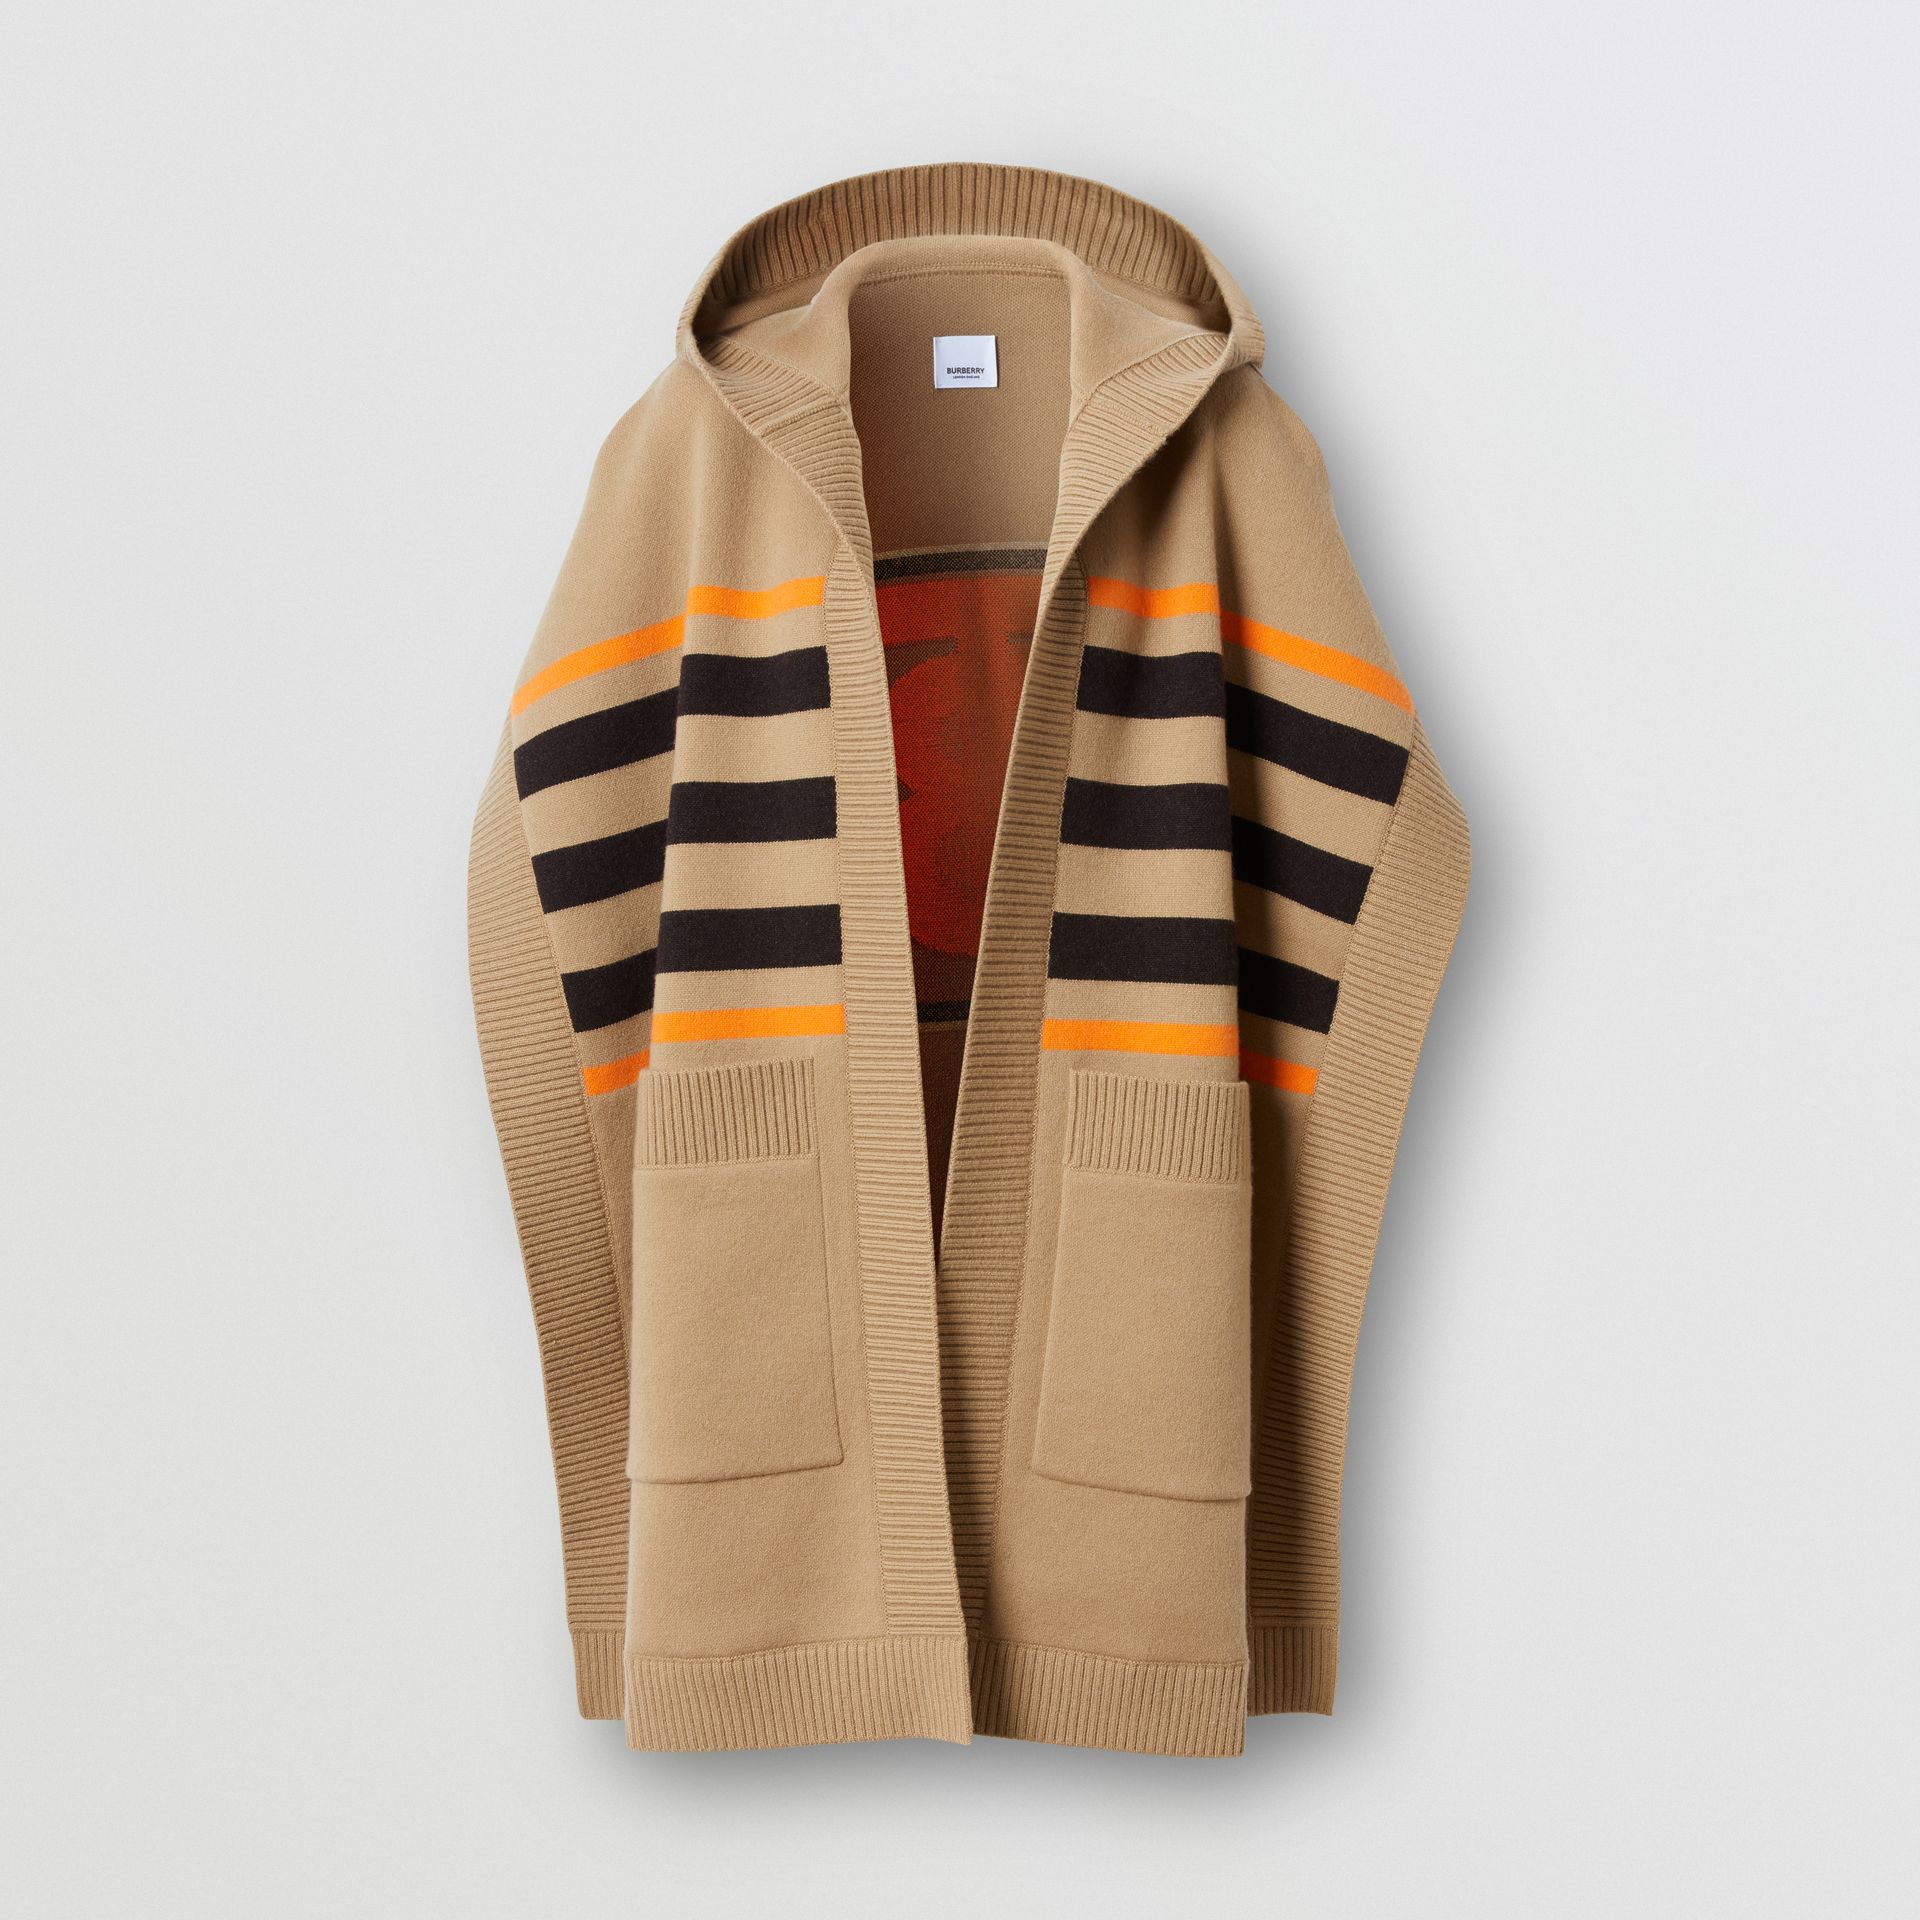 Monogram Motif Intarsia Wool Cashmere Blend Cape in Archive Beige - Women | Burberry Australia - gallery image 3